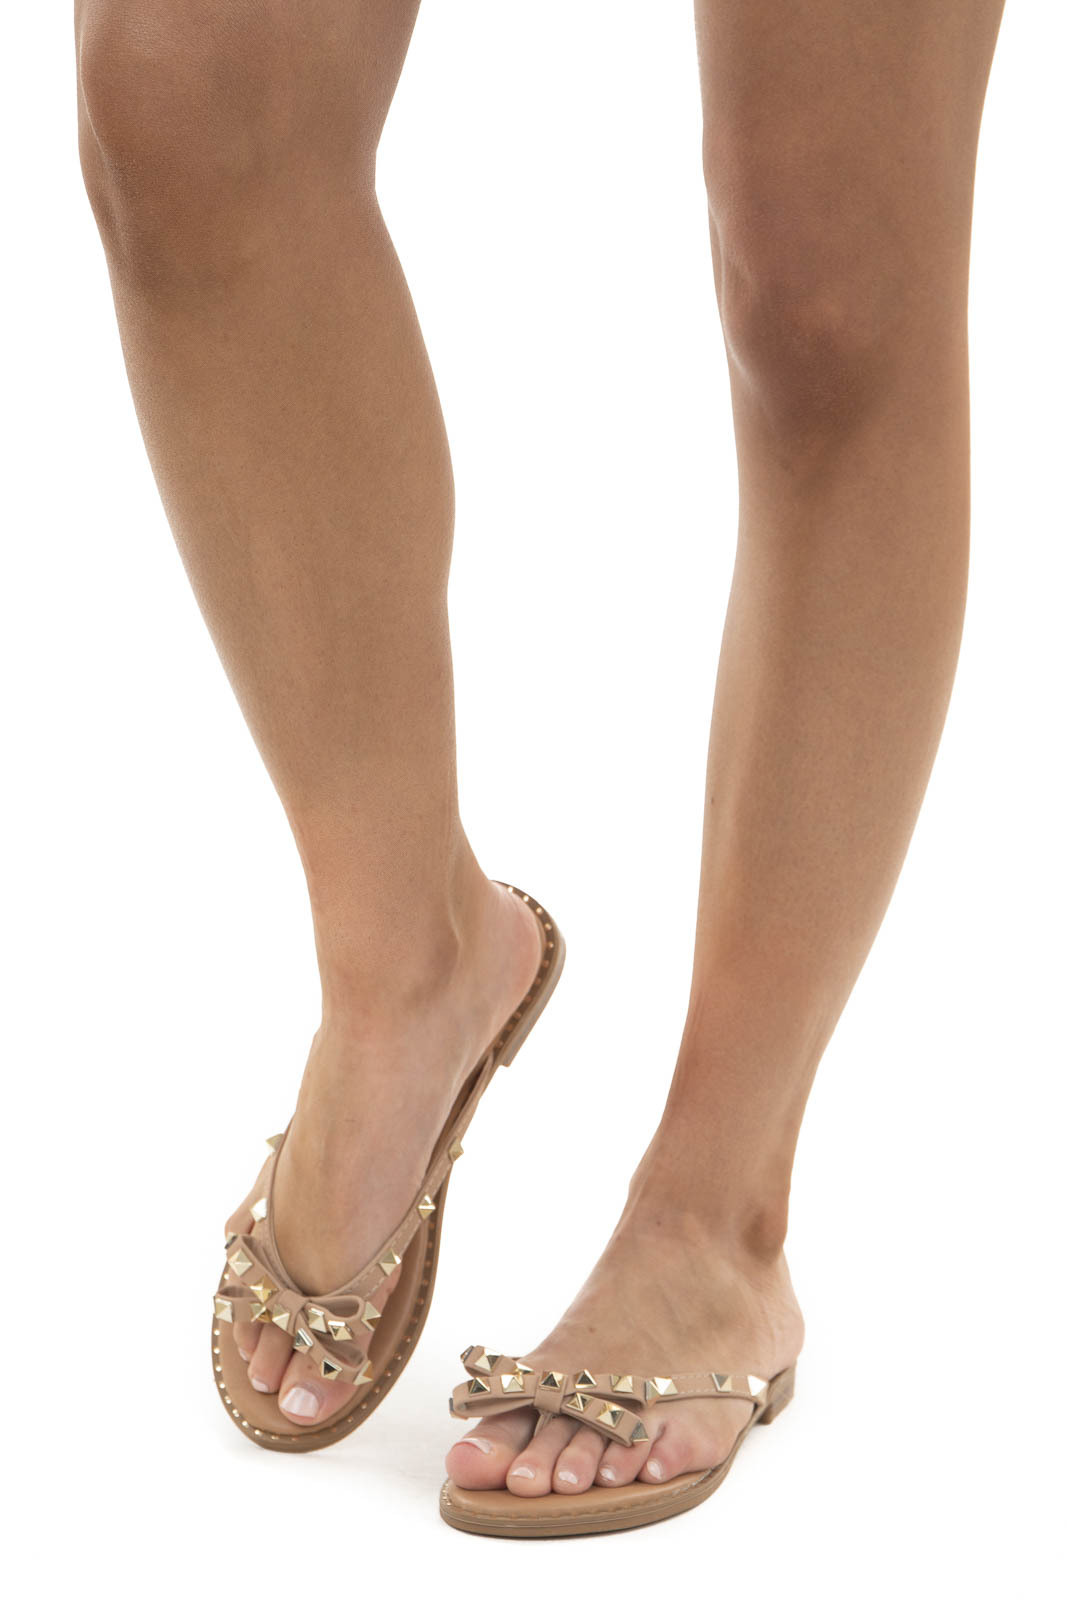 Latte Low Heel Thong Sandals with Bow and Gold Stud Details